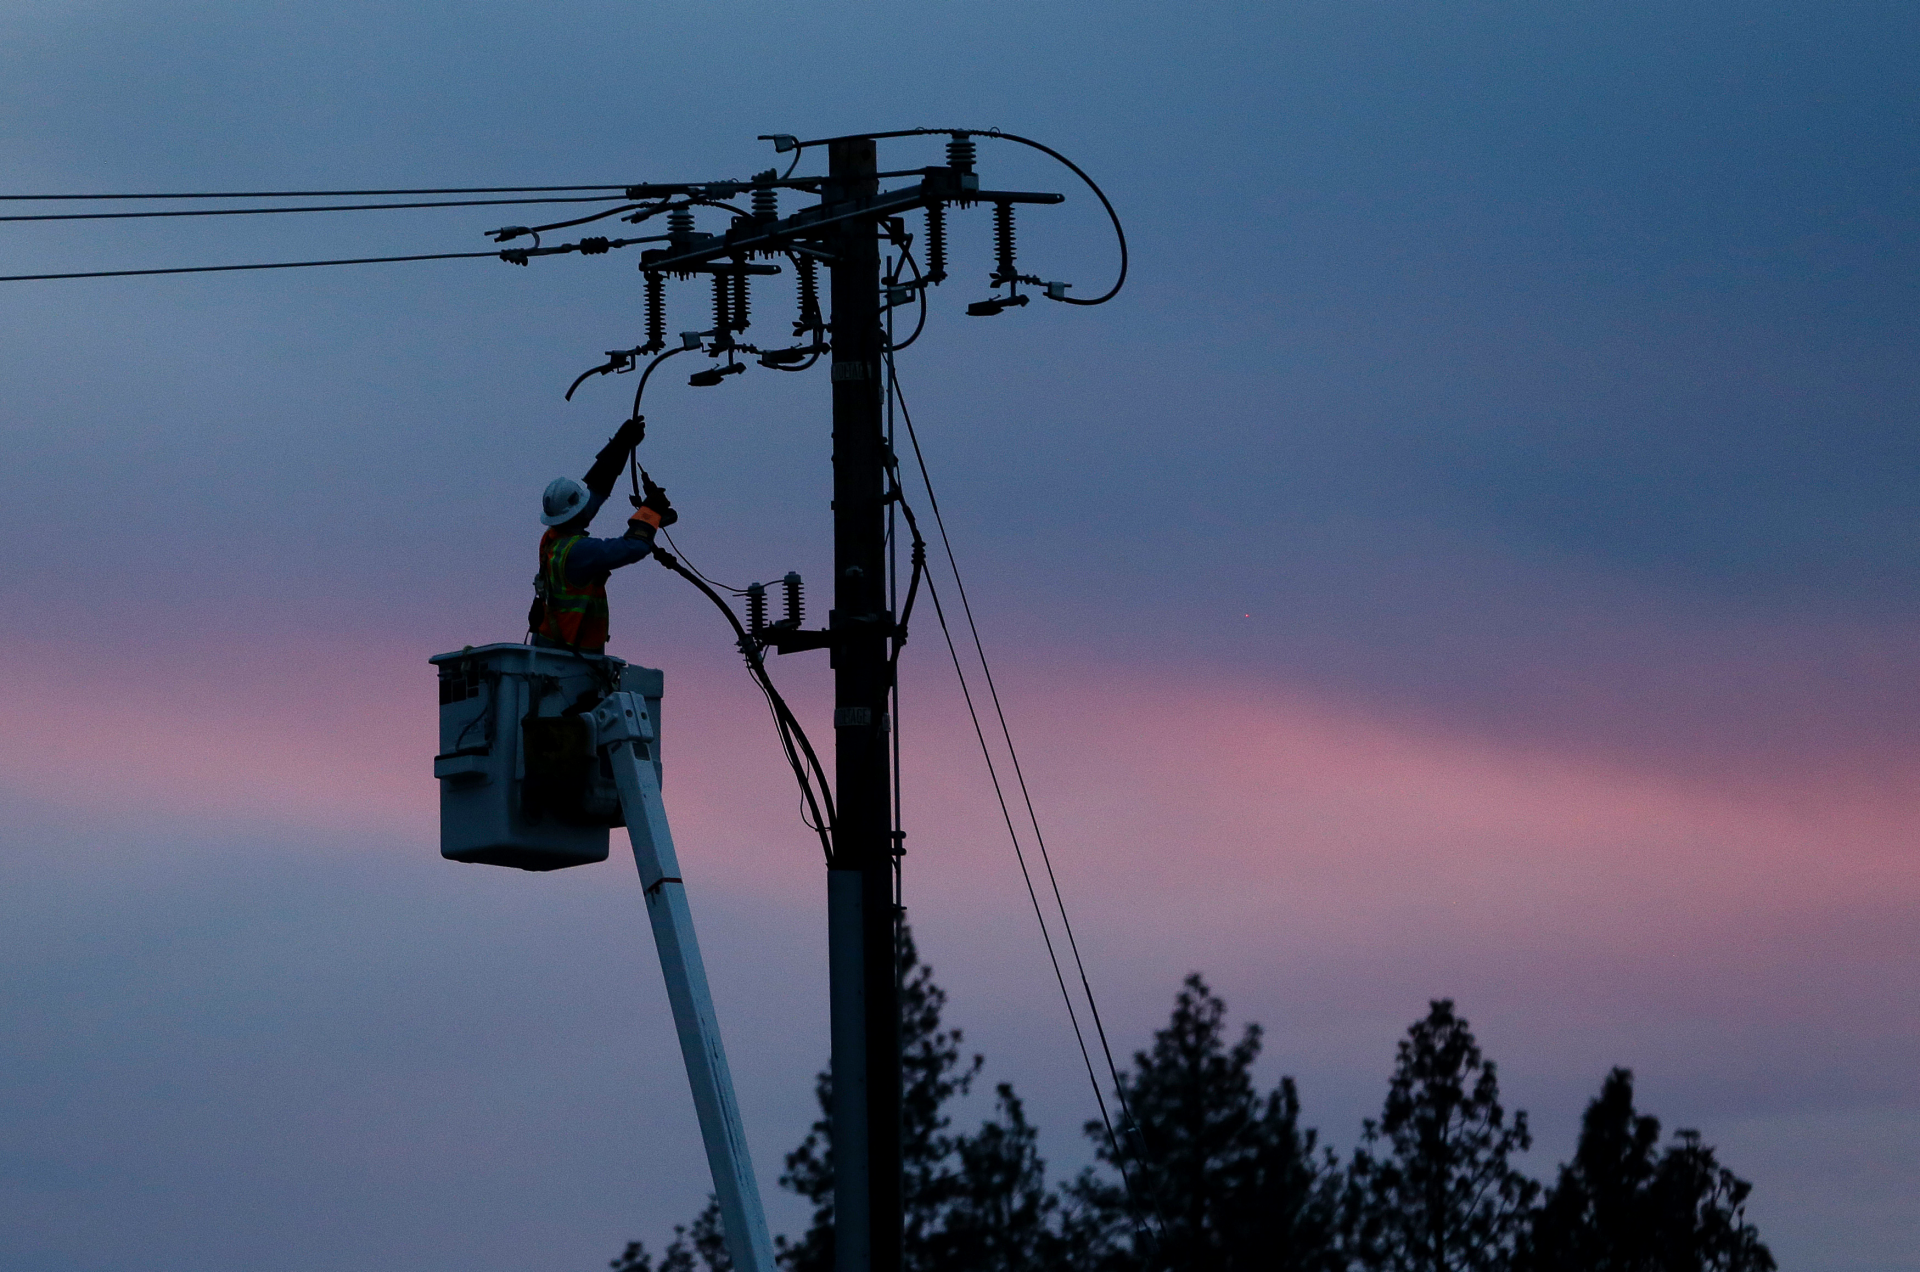 Westlake Legal Group ContentBroker_contentid-a8836b4751db4662bc783fee2aae85a4 California utility PG&E could cut power to 850,000 households over 'historic wind event' fox-news/us/us-regions/west/california fox-news/us/energy fox news fnc/us fnc Brie Stimson article 032667b9-250a-5dee-9efd-15c7083f5ed9